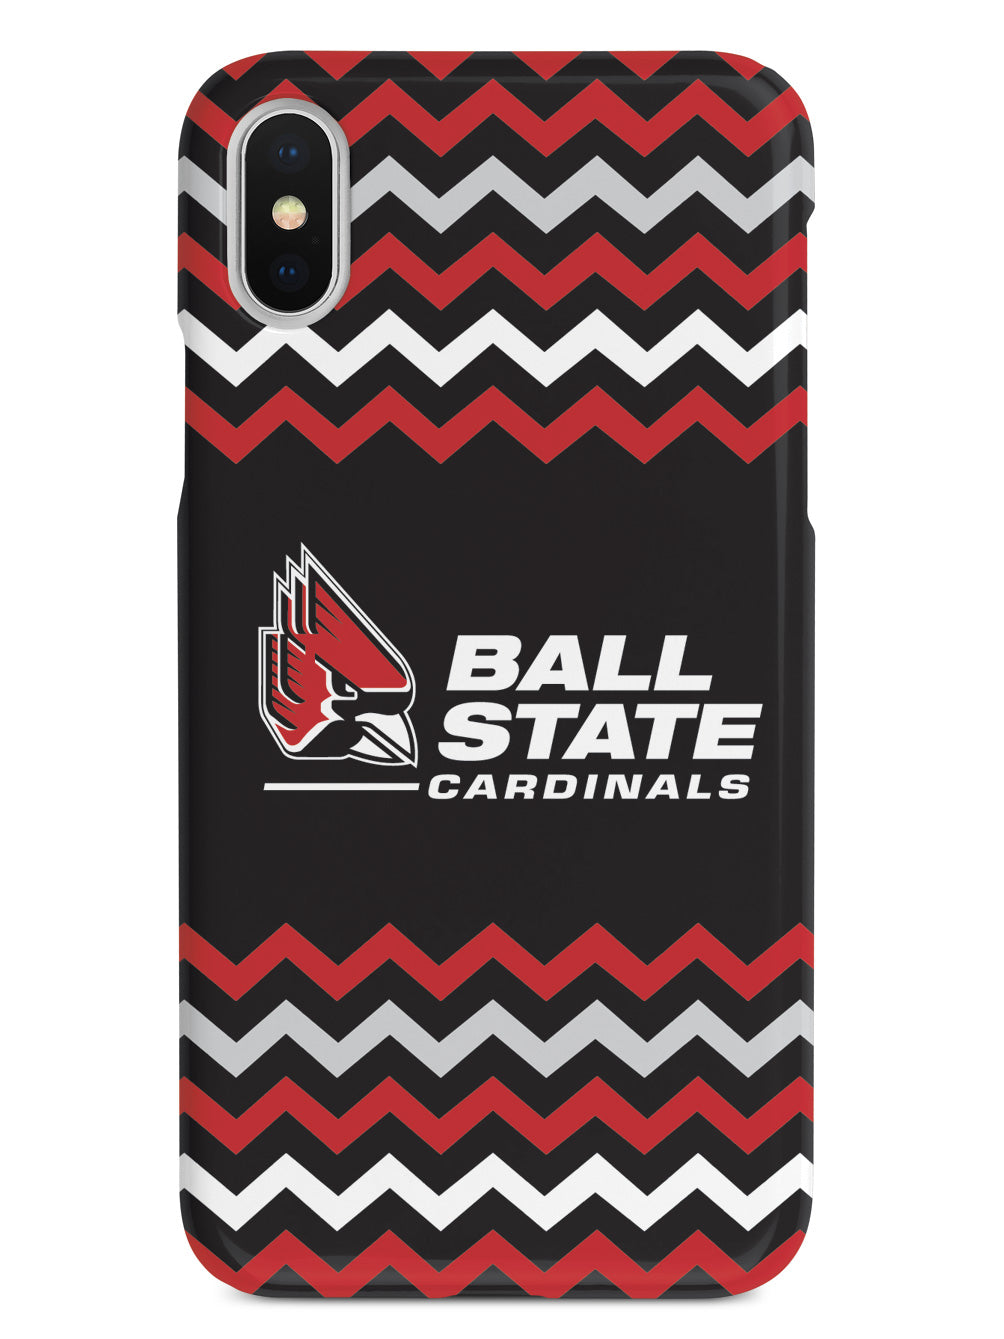 Ball State Cardinals - Chevron Case